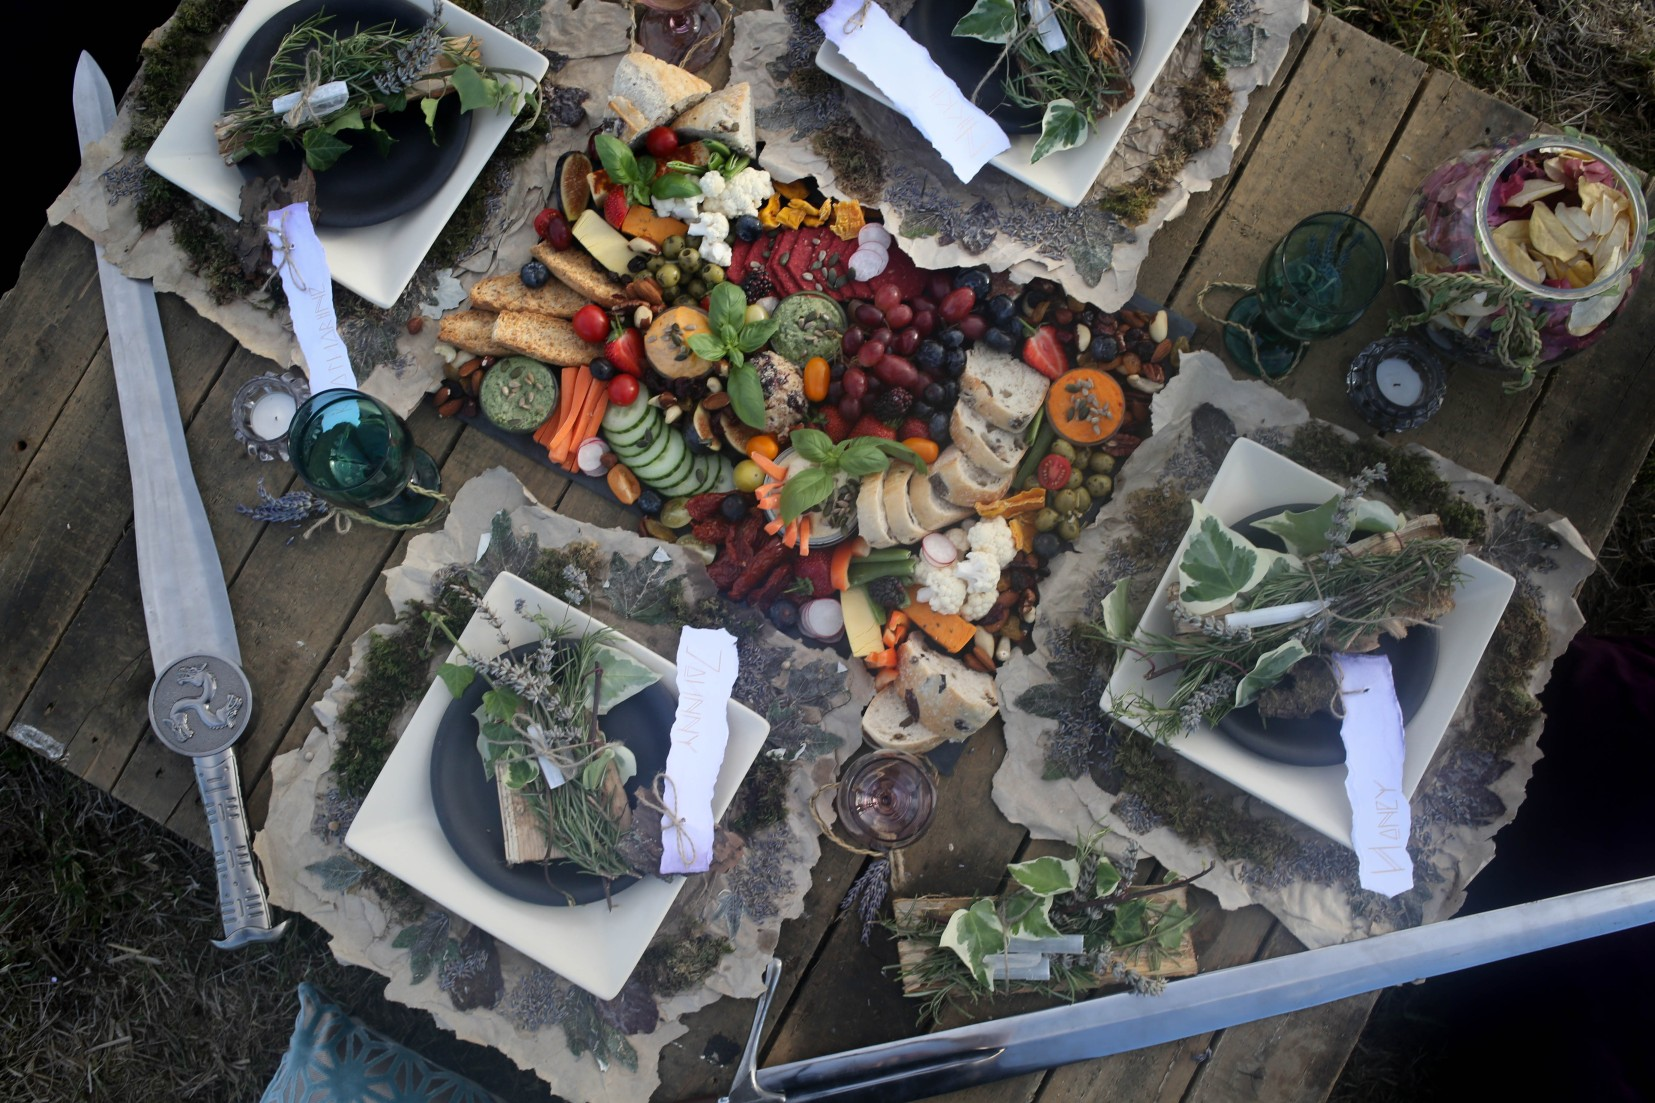 nature wedding - pagan wedding - ethereal wedding - spiritual wedding - alternative wedding - mystical wedding - quirky wedding - wedding banquet - wedding grazing table